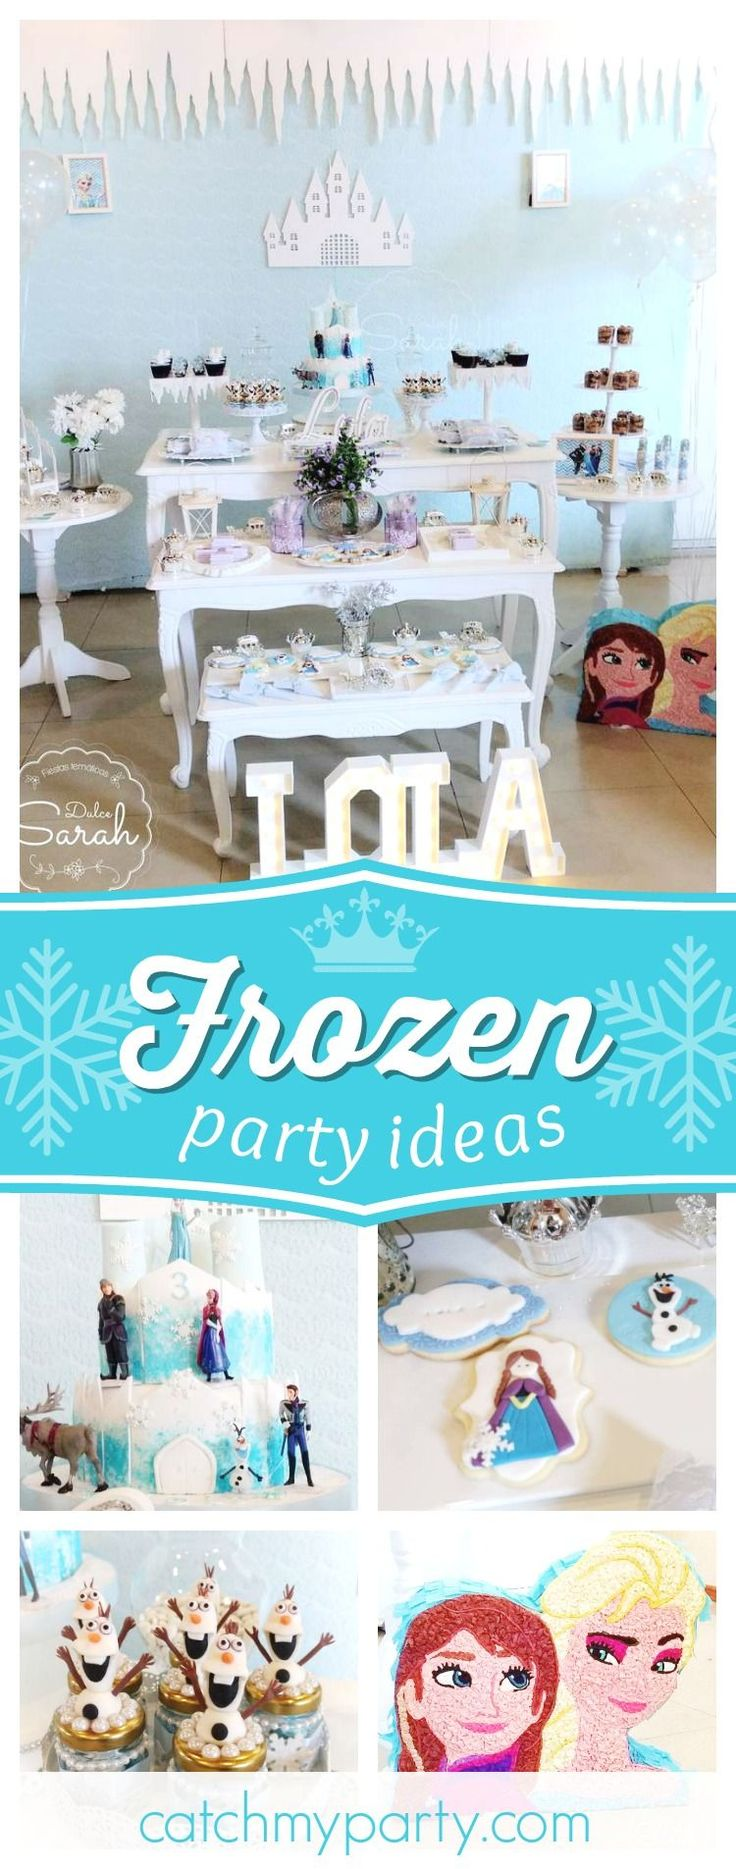 CHeck out this gorgeous Frozen birthday party! The pinata is adorable!! See more party ideas and share yours at CatchMyParty.com #partyideas #catchmyparty #frozen #girlbirthday #princess